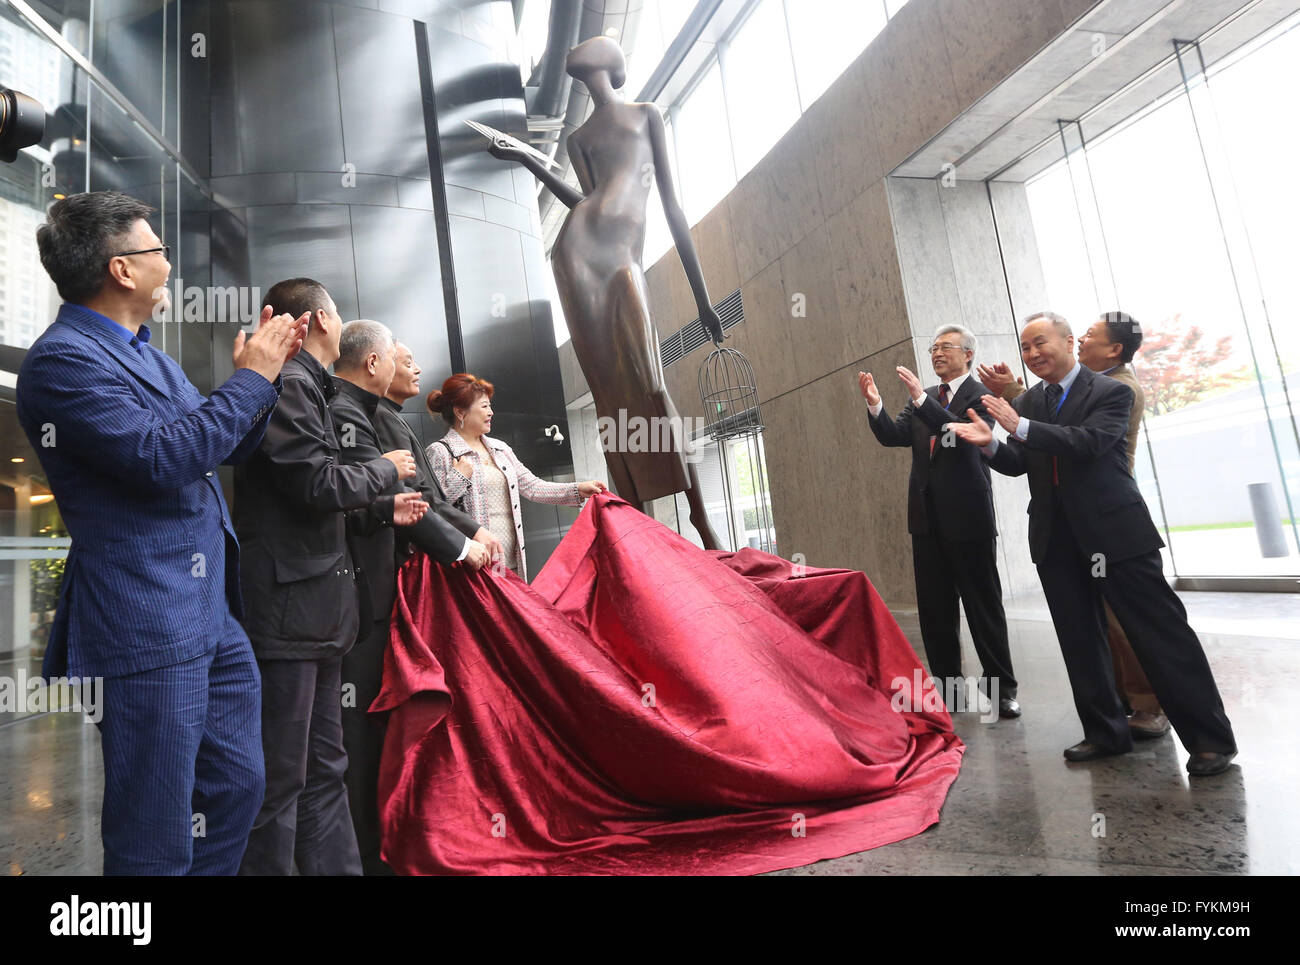 (160427) -- SHANGHAI, April 27, 2016 (Xinhua) -- Guests unveil a statue, created by Chinese artist Chen Yifei, at - Stock Image